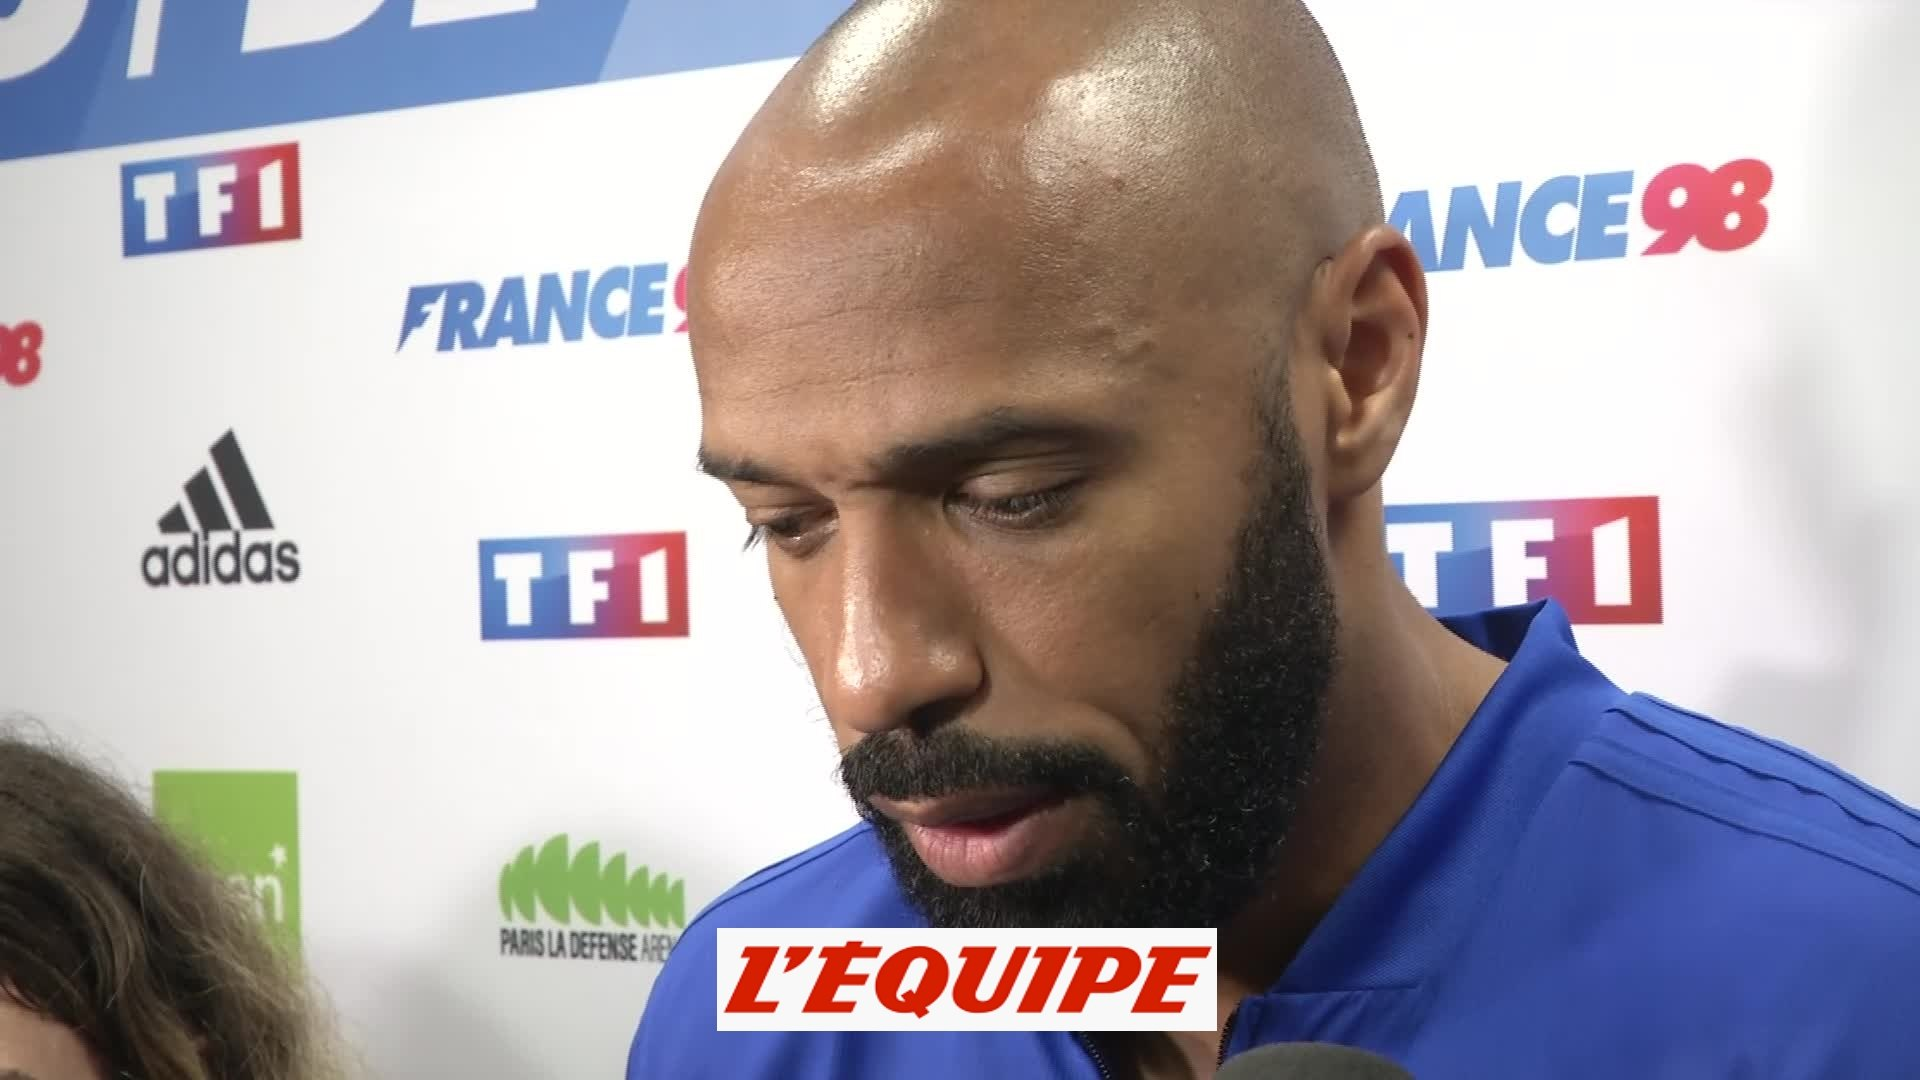 Henry «Beaucoup d'émotion» - Foot - Gala - France 98